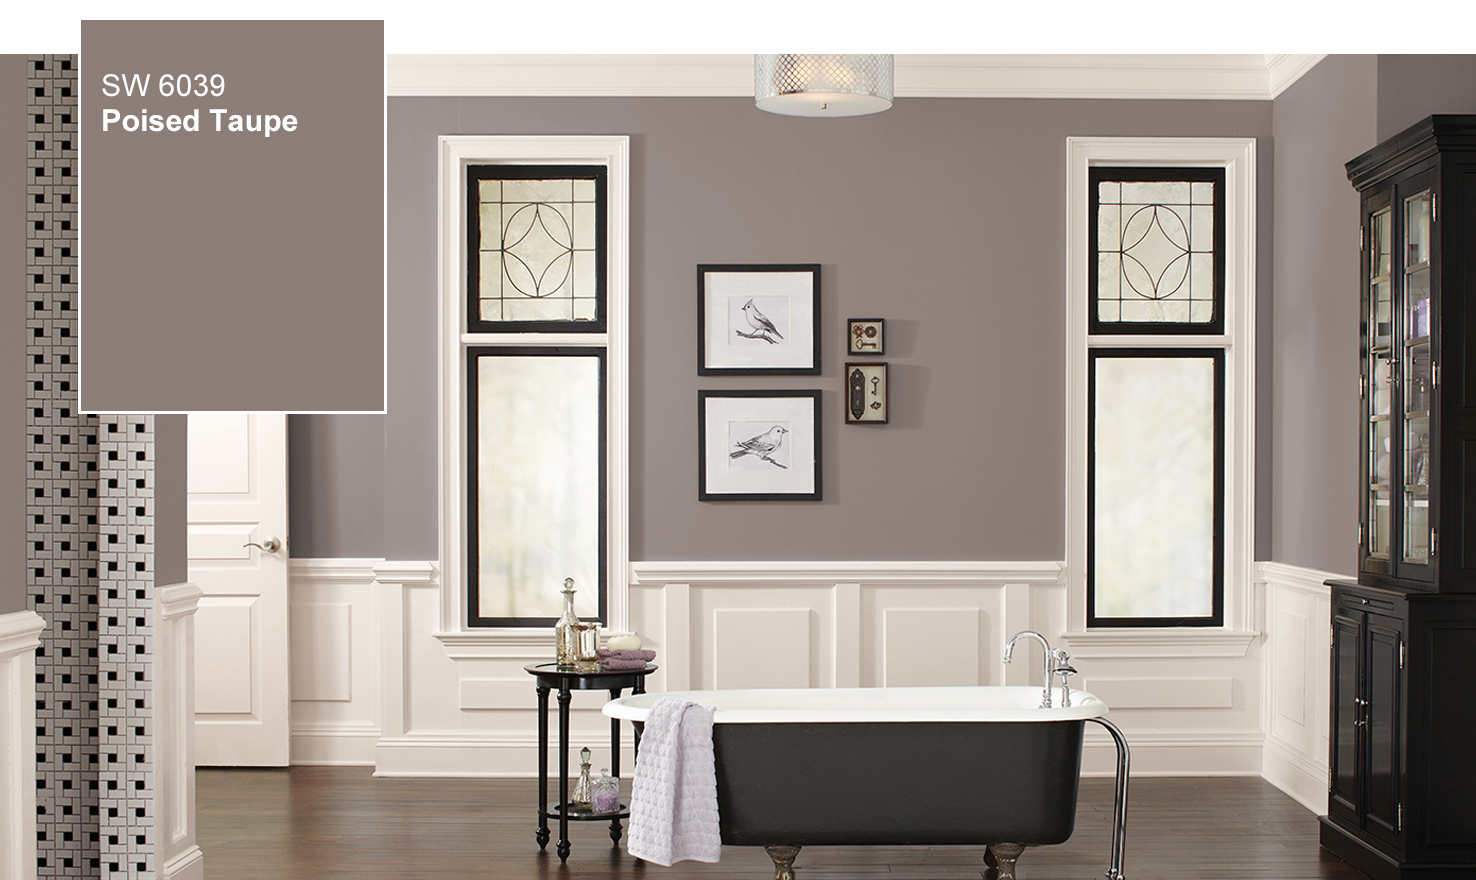 sw-poised-taupe-sw-6039